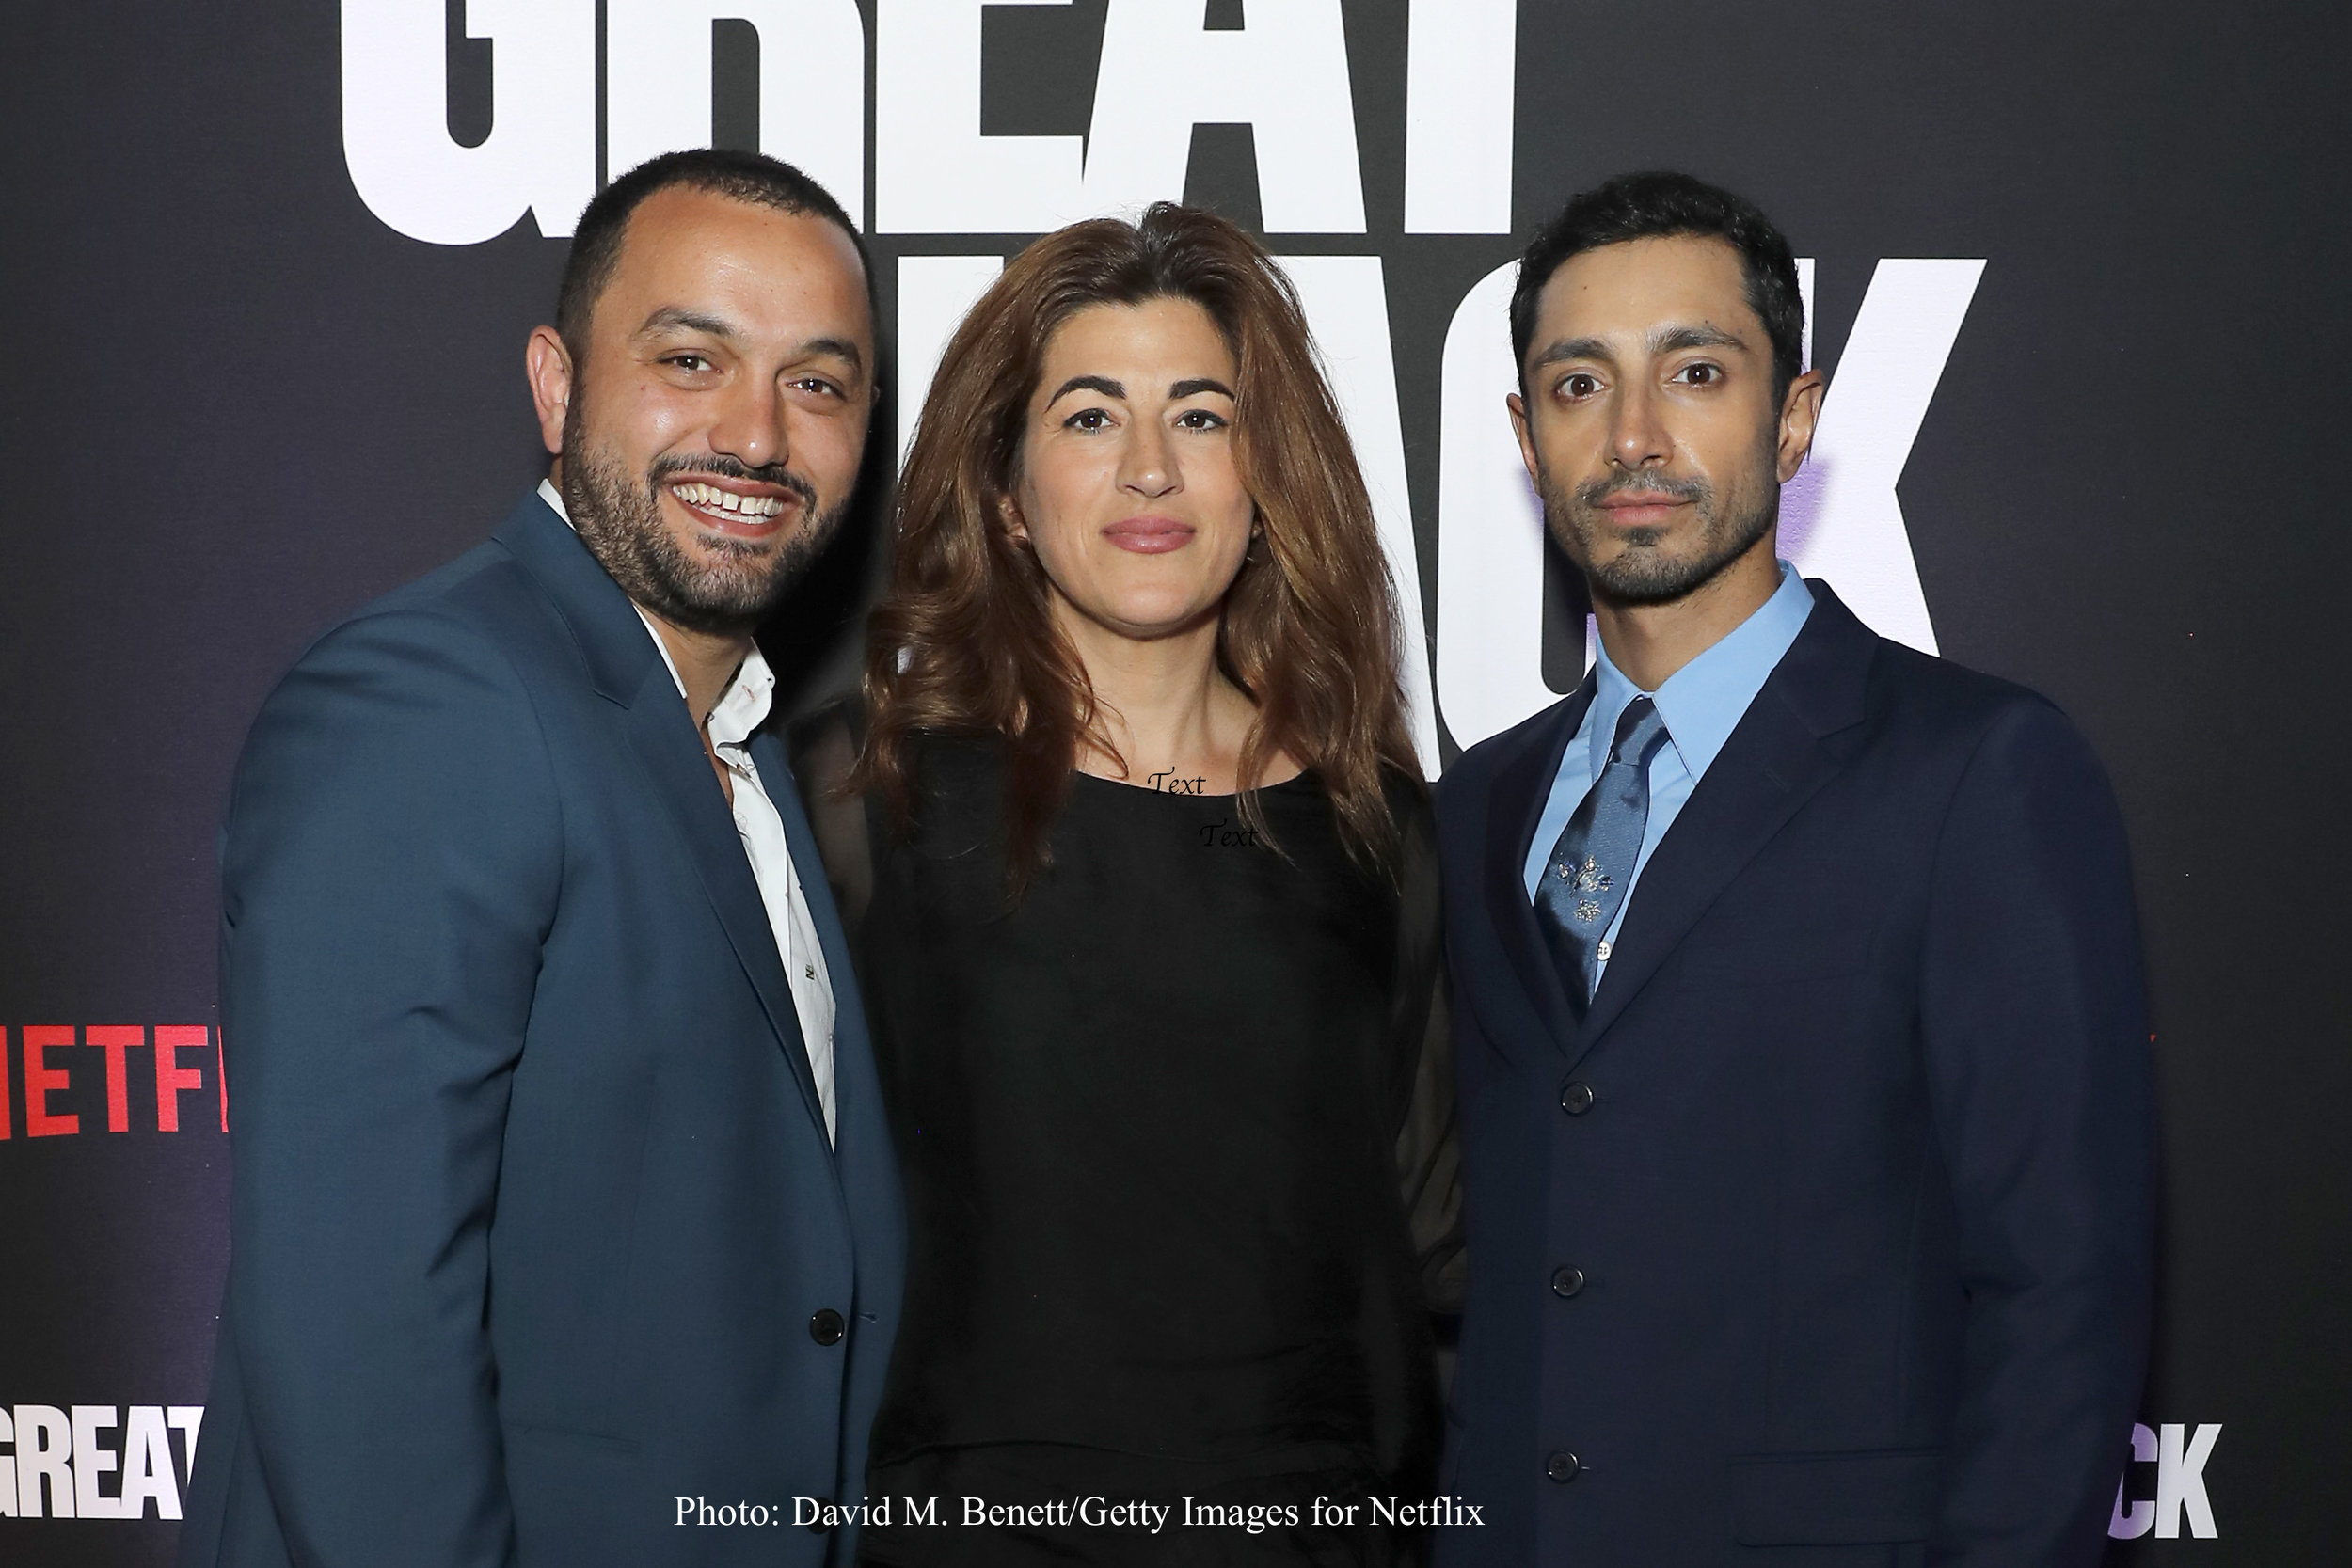 They decoded the Egyptian revolution in their Oscar-nominated 'The Square' - Now Jehane Noujaim and Karim Amer take us down the rabbit hole of data mining in their latest, the Netflix release 'The Great Hack'.